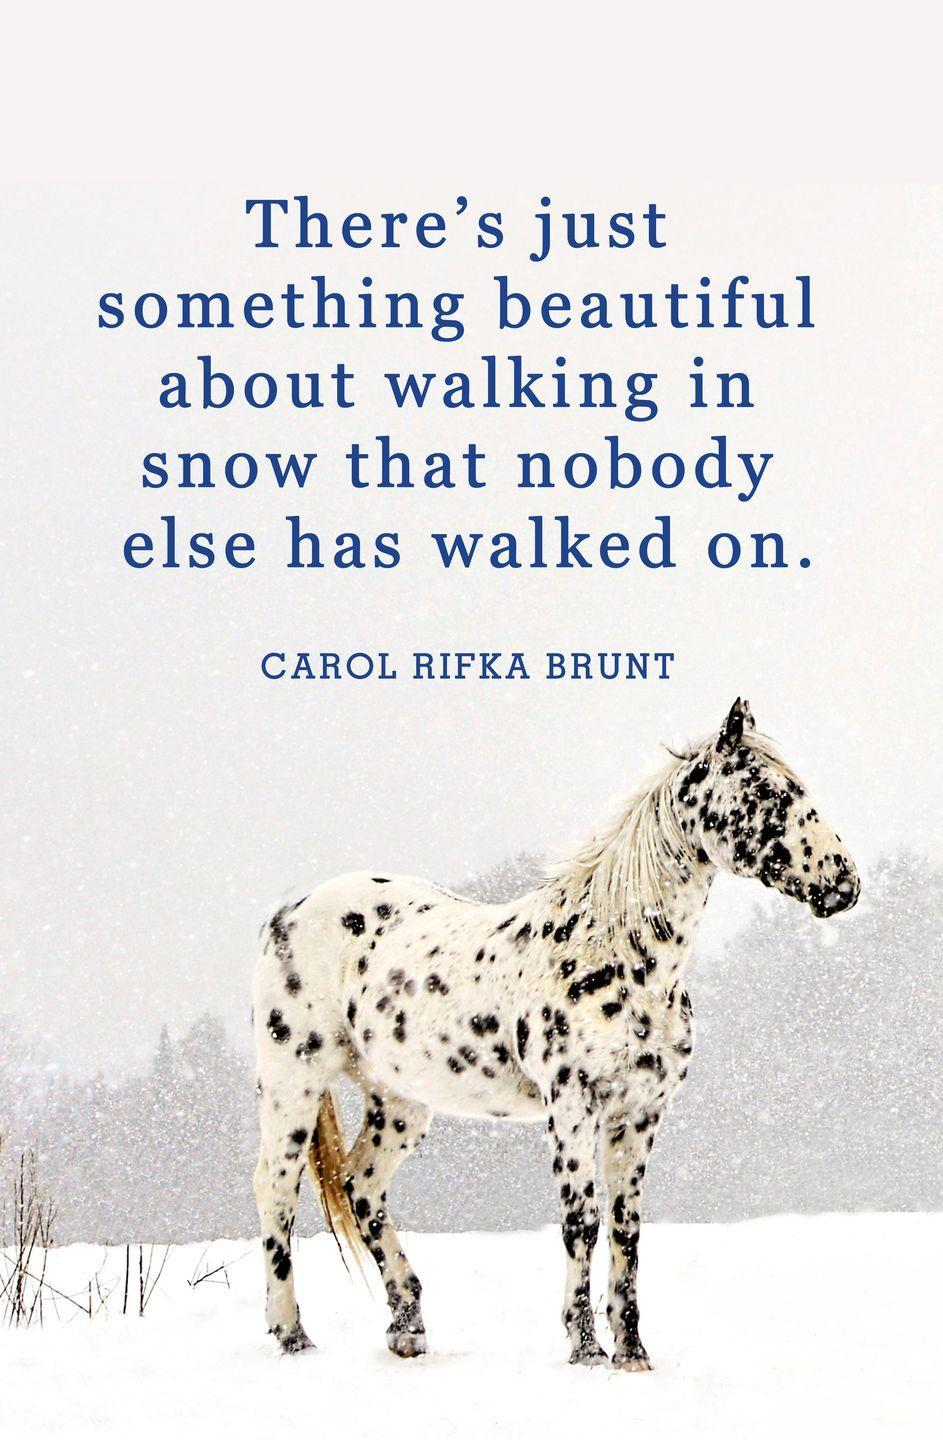 "<p>""There's just something beautiful about walking in snow that nobody else has walked on. It makes you believe you're special.""</p>"